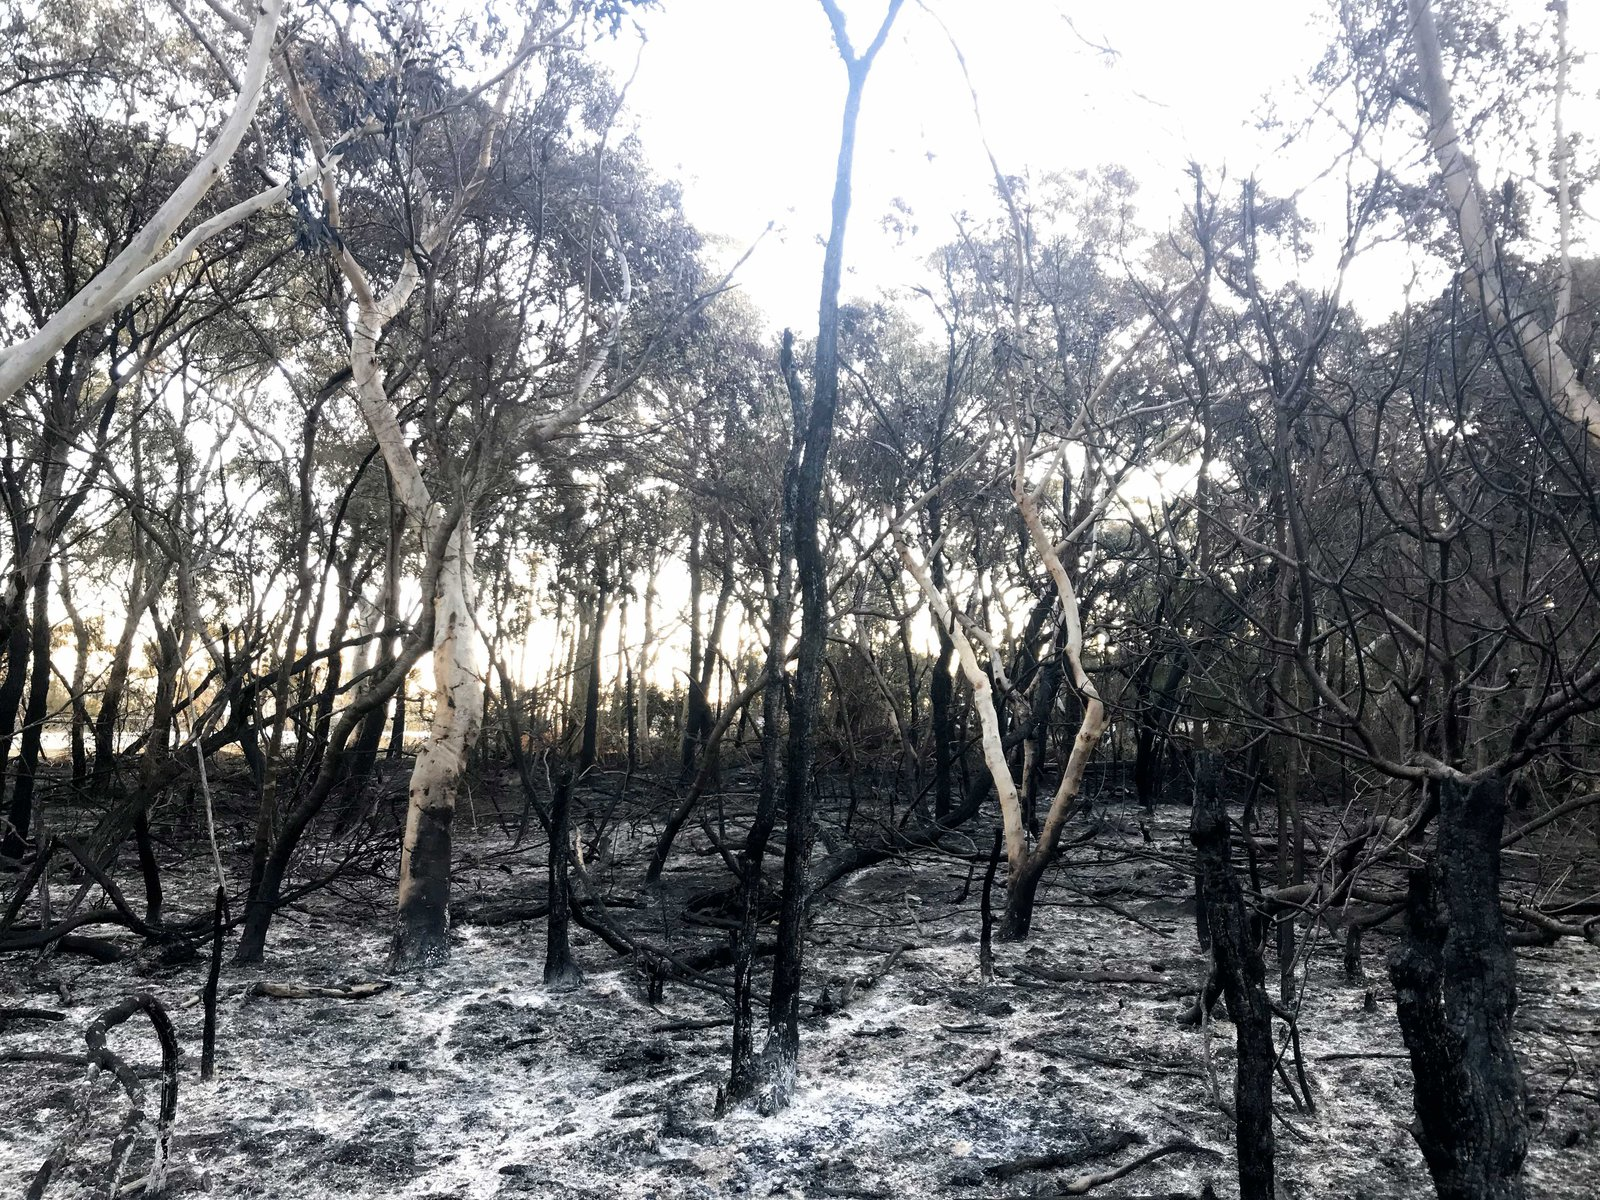 Burnt habitat